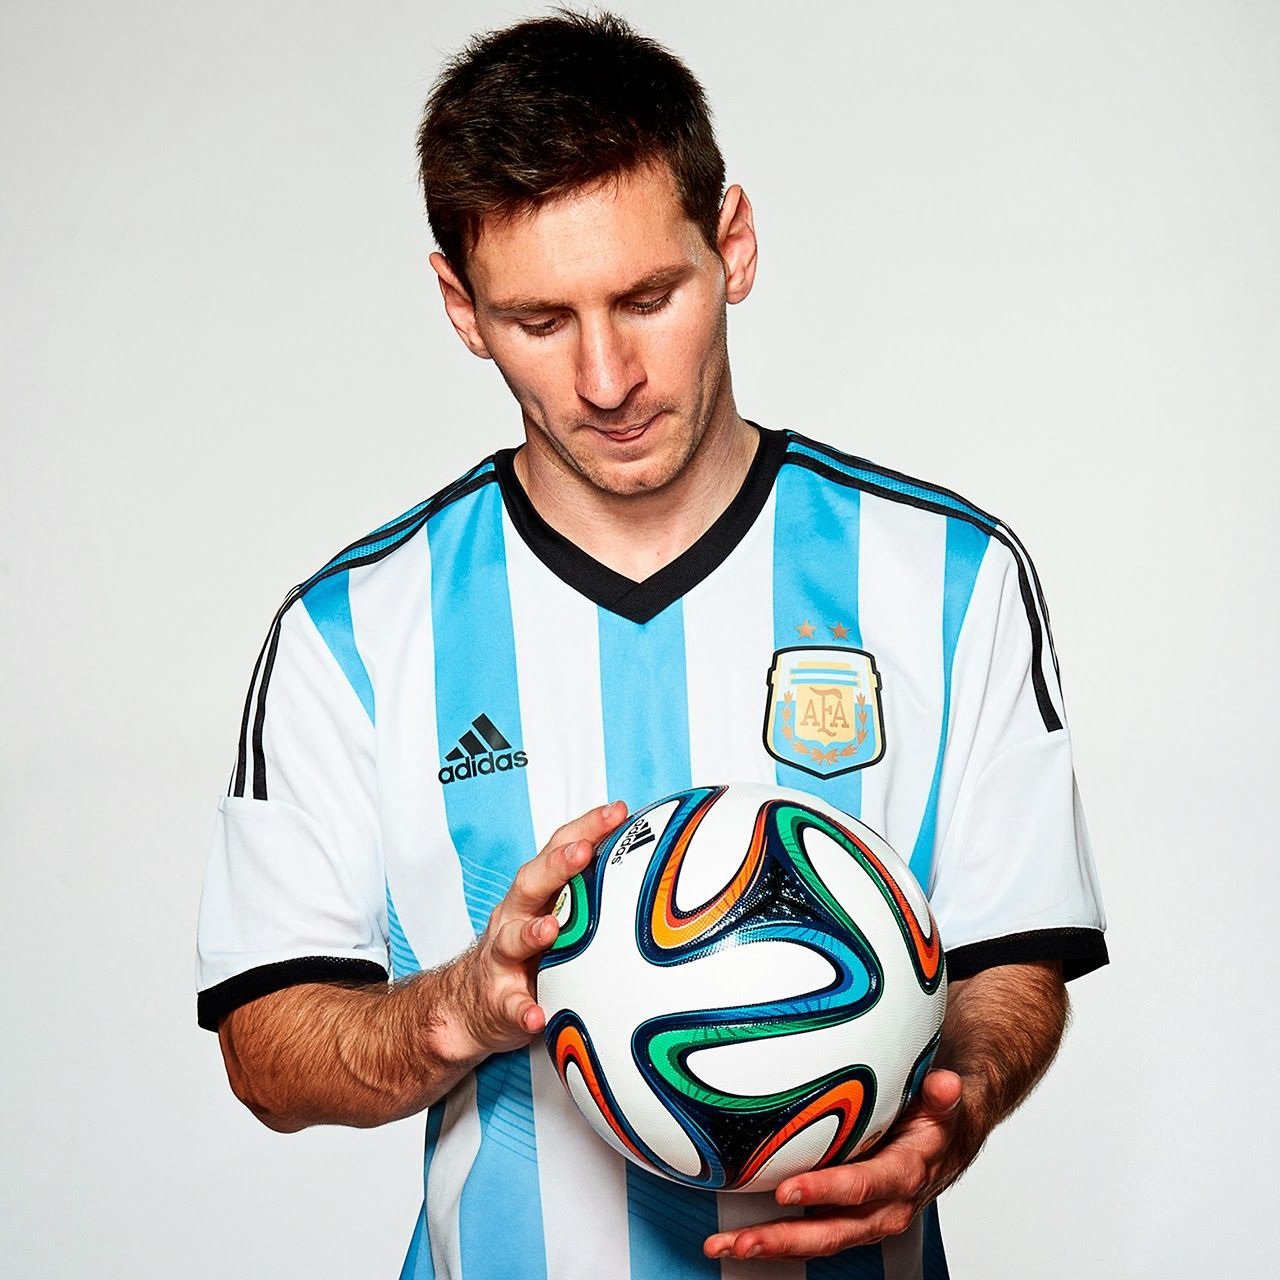 b2718083149 ... team home 10 Lionel Messi White Jerseys Looking For Fifa world cup 2014  wallpaper messi. Get Fifa world cup 2014 wallpaper messi Argentina Soccer  ...